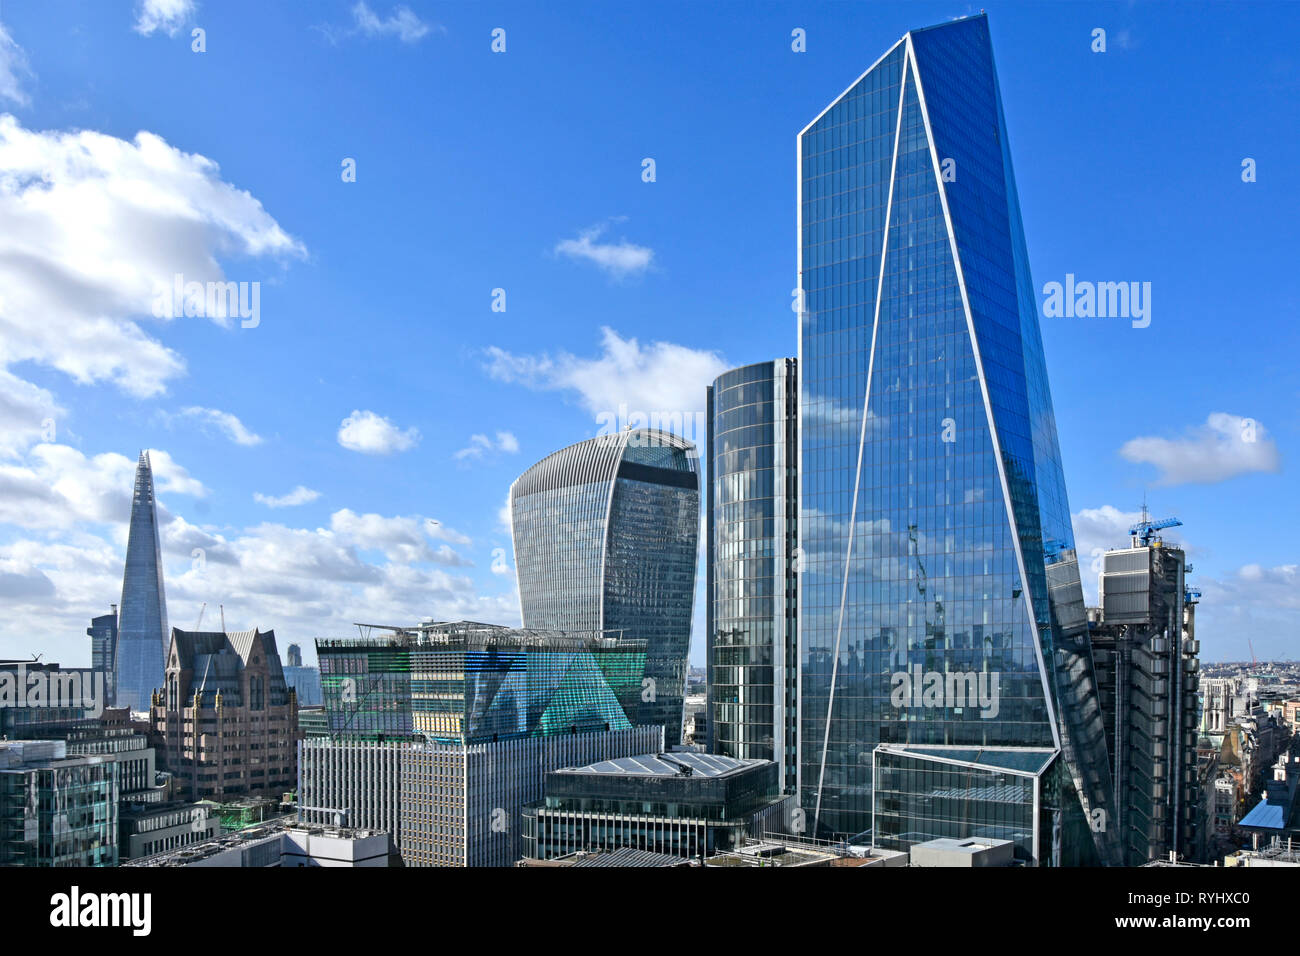 Glass reflective cladding on the new modern Scalpel landmark skyscraper office building in City of London skyline with views to the Shard England UK - Stock Image